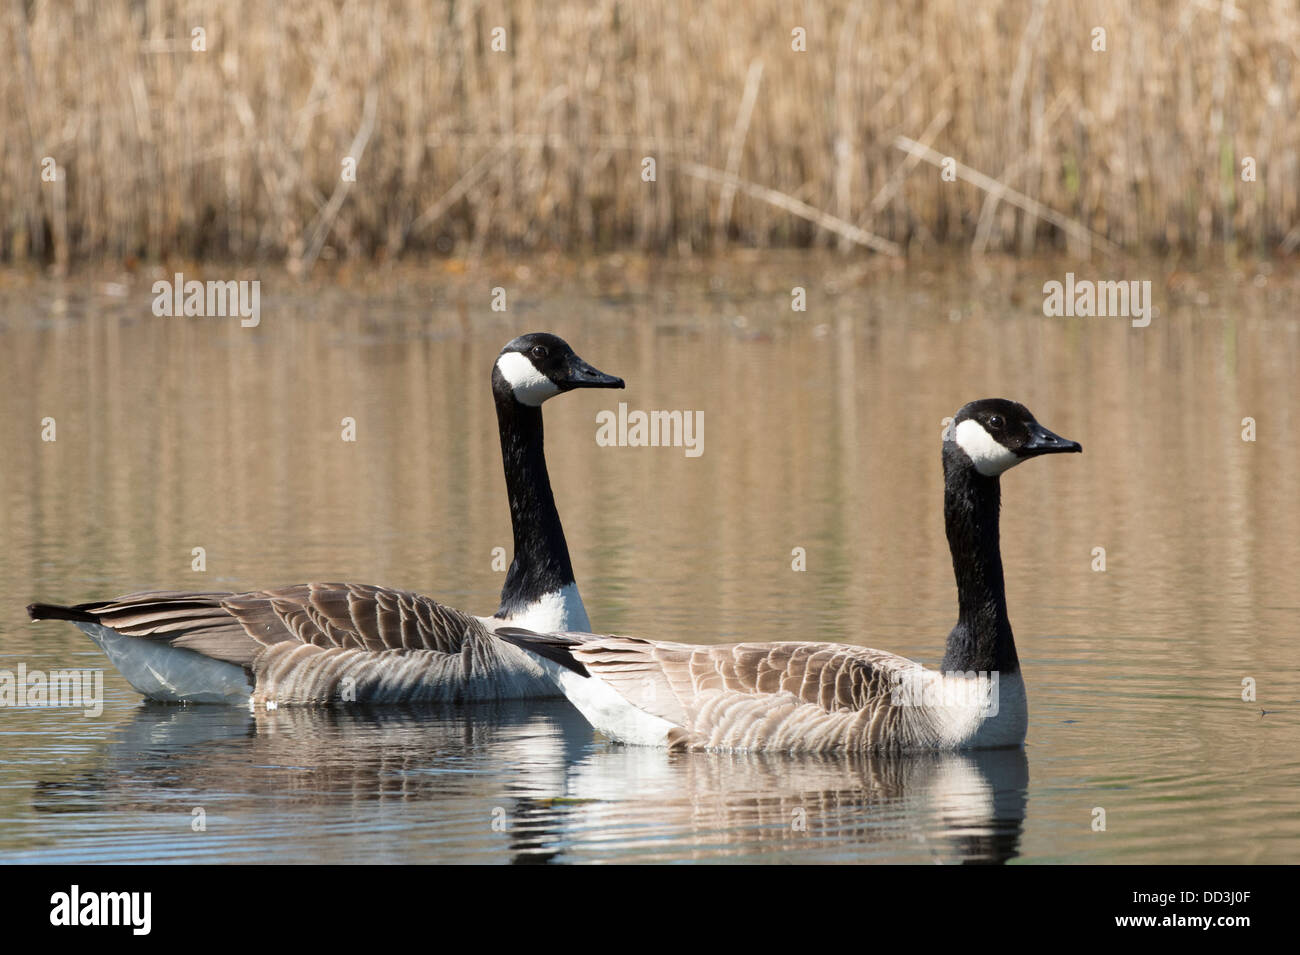 A pair of Canada Geese swimming on a lake - Stock Image